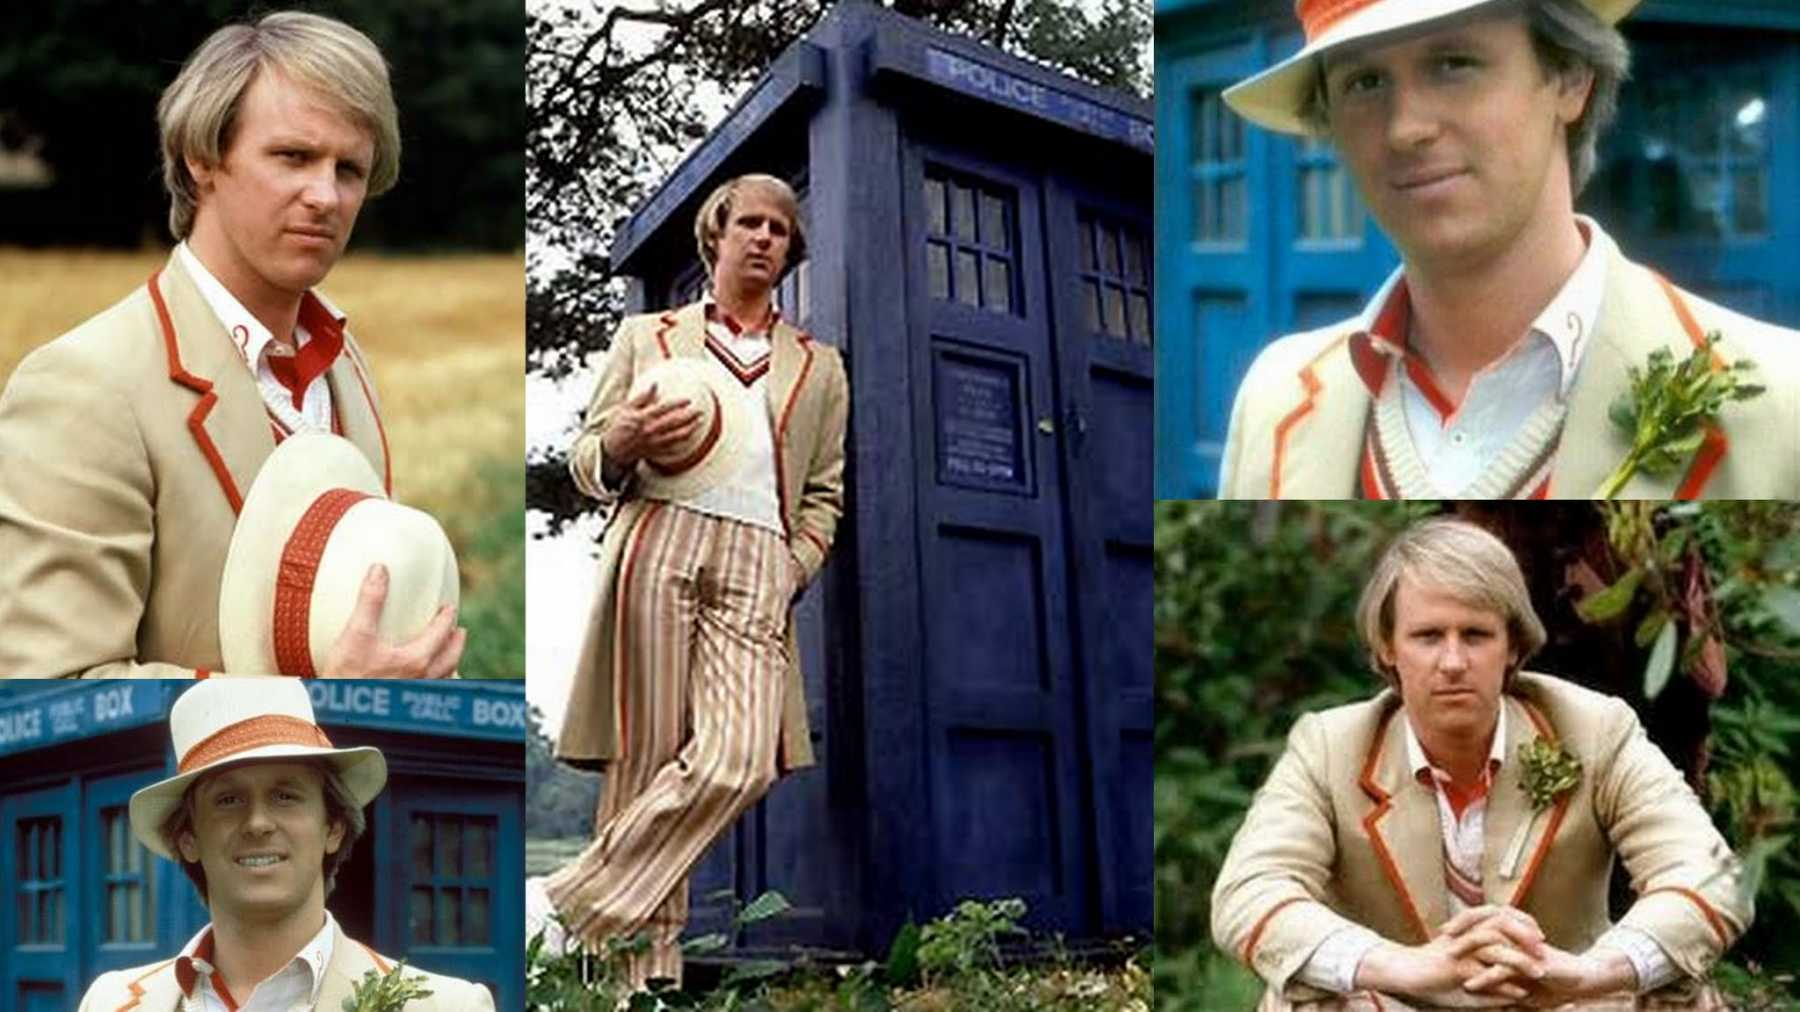 Doctor Who's Fifth Doctor Peter Davison Enrages Women's Rights Groups With Gender Comments